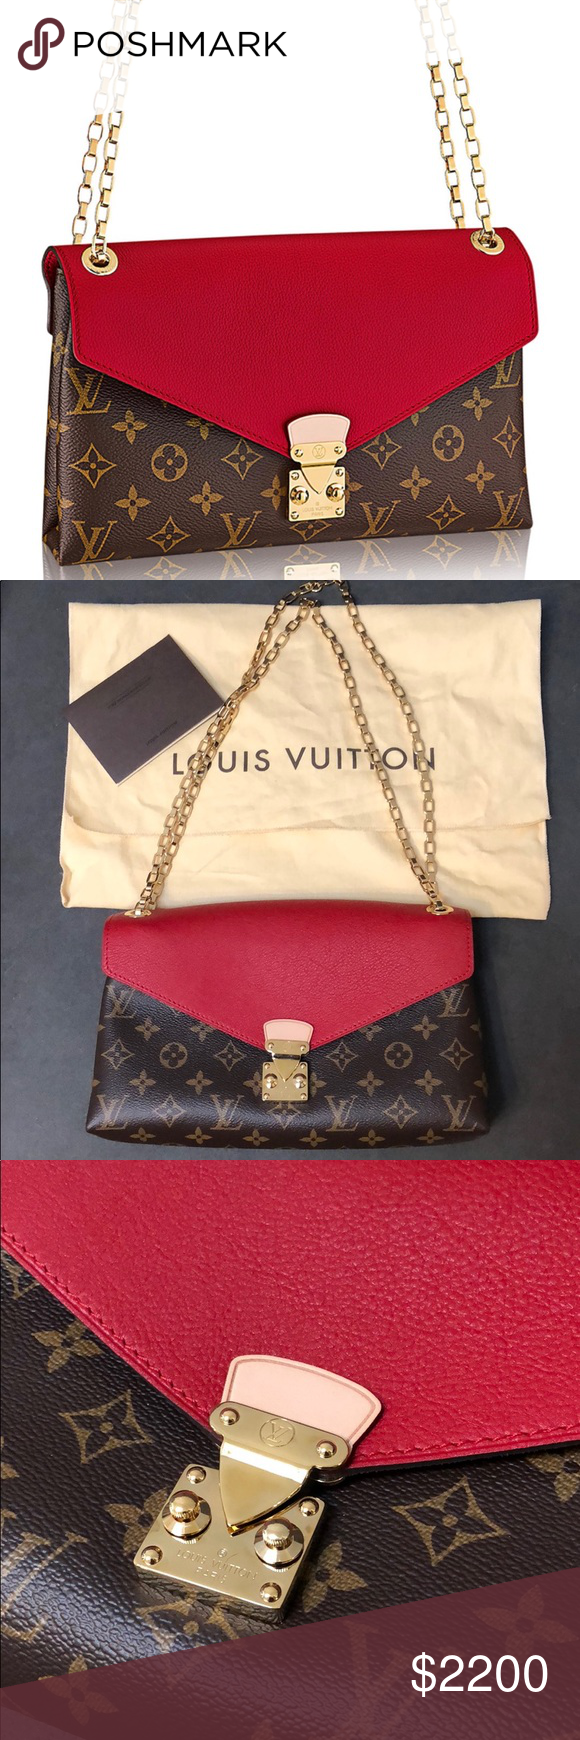 99bffc53d80a NEW authentic Louis Vuitton Pallas Chain NWT in 2018